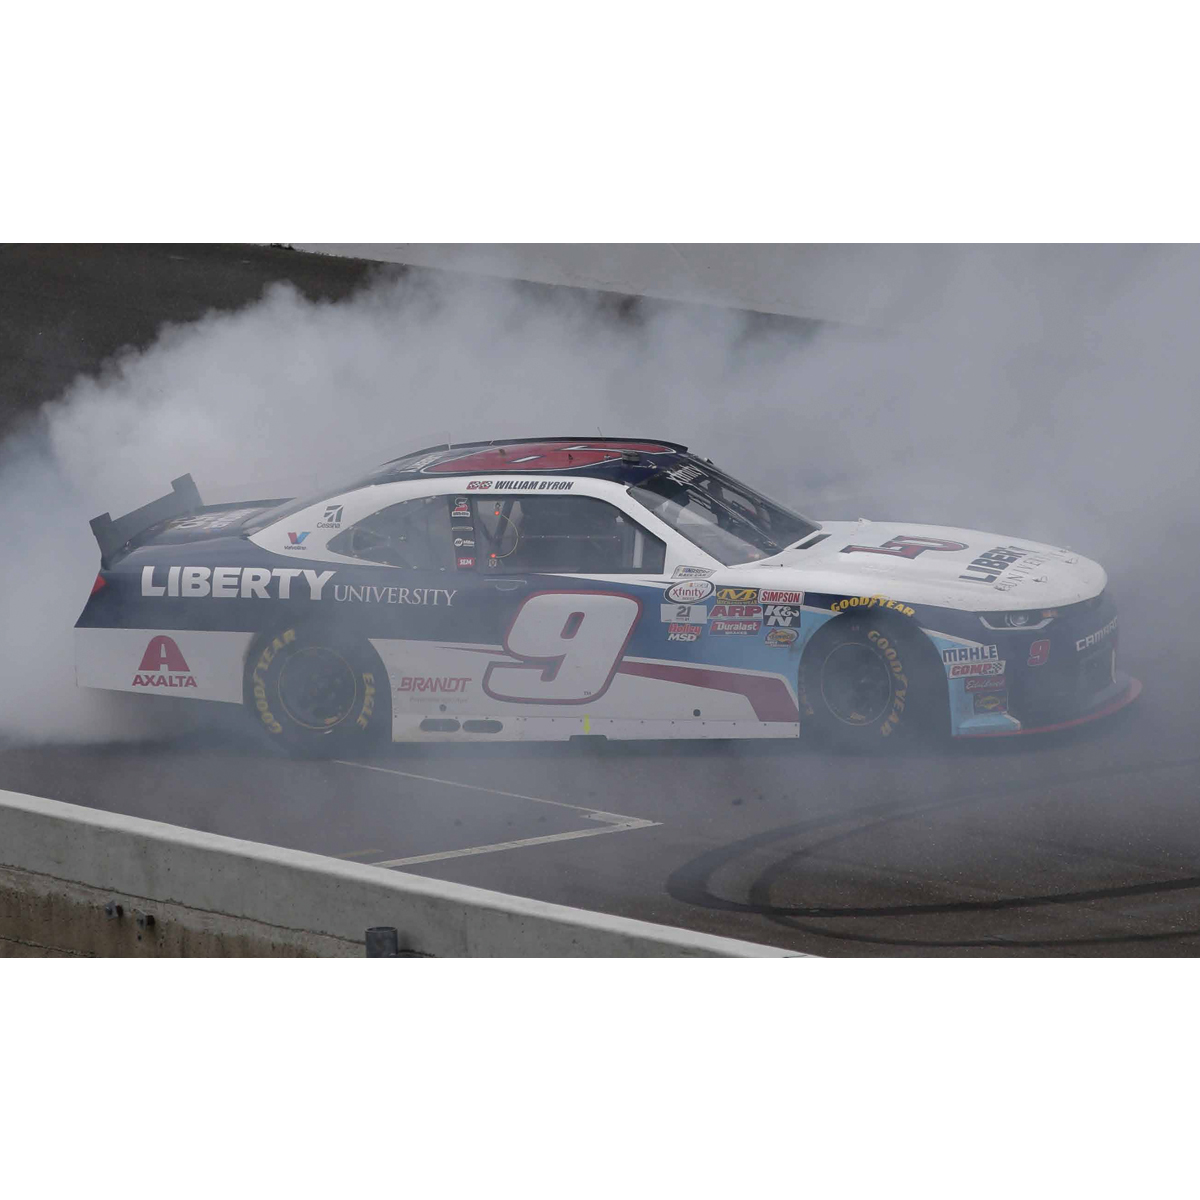 Autographed JR Motorsports 2017 William Byron Xfinity Series INDIANAPOLIS VICTORY 1:24 Scale Die-Cast